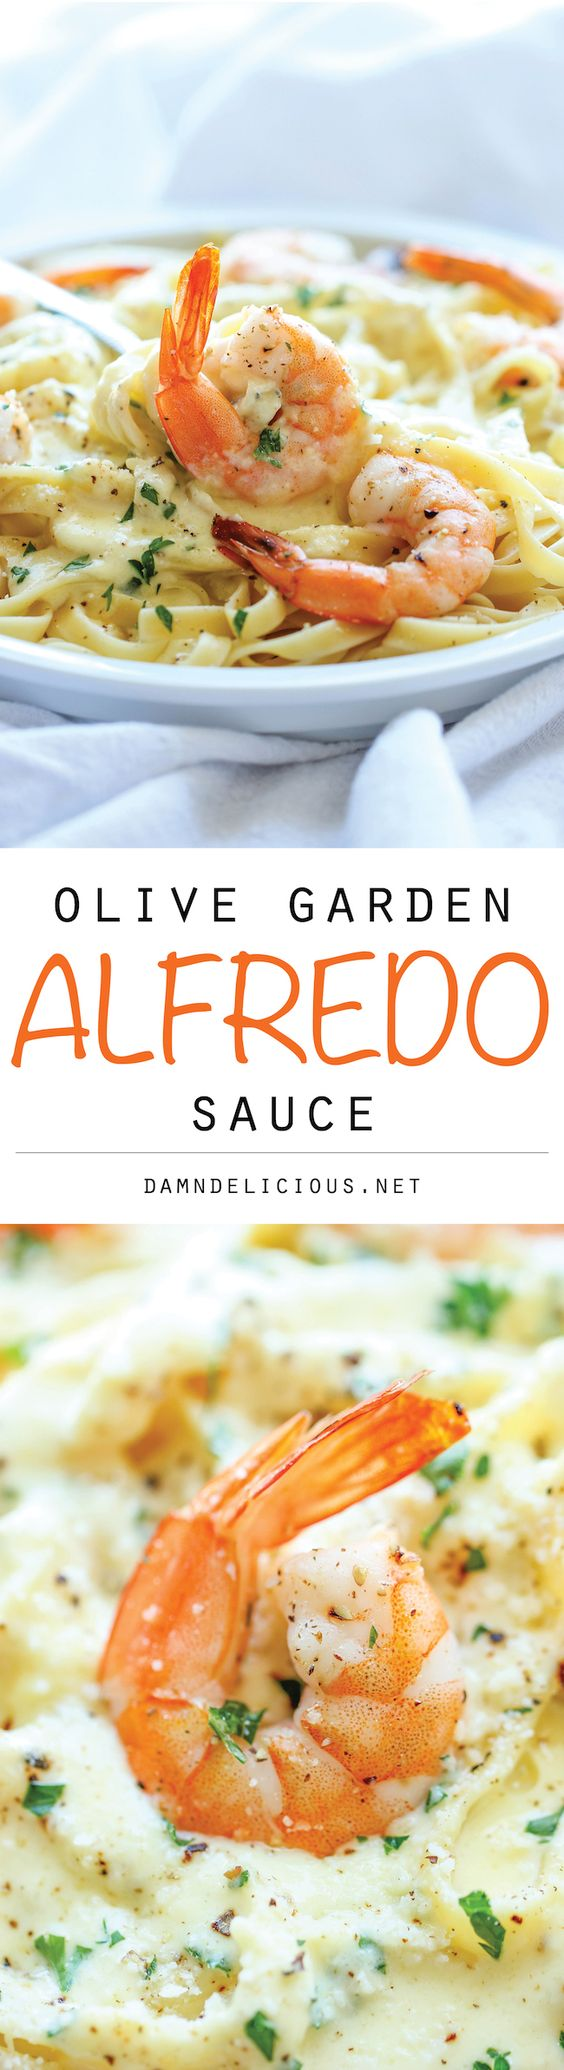 Olive Garden Alfredo Sauce Recipe Gardens, Sauces and